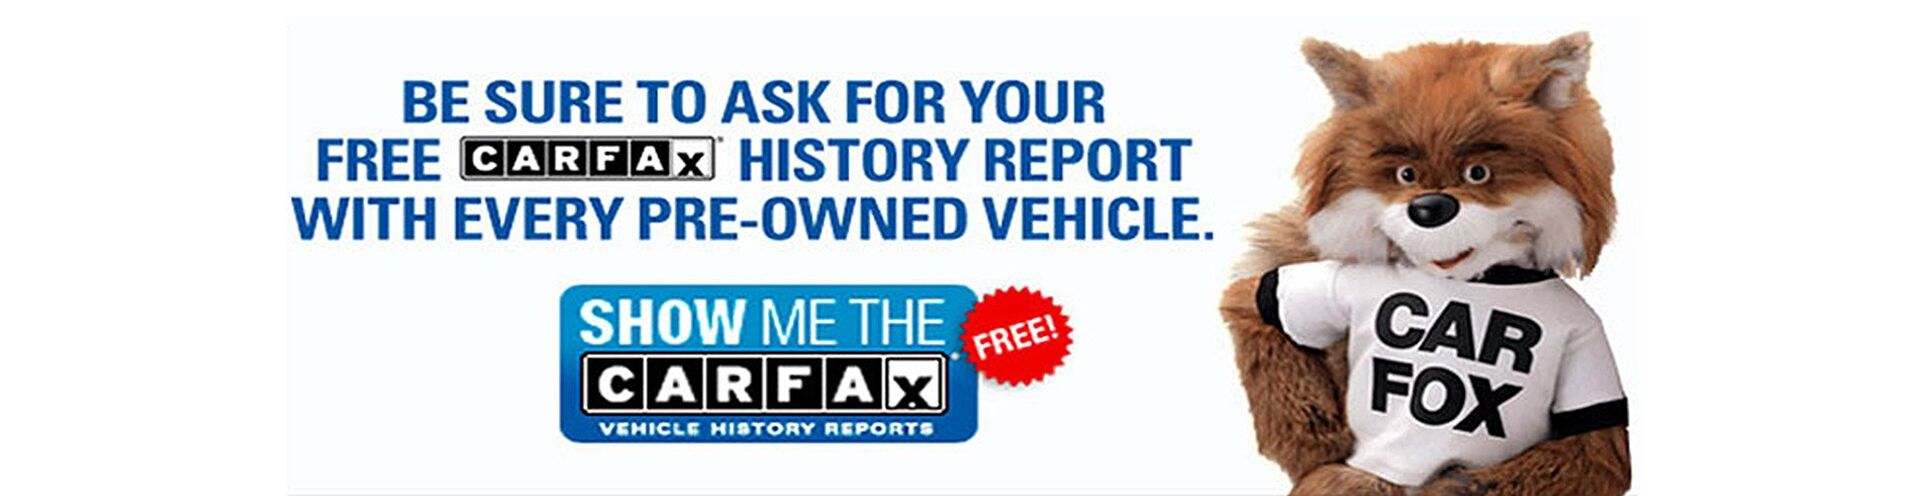 Free Car Fax History Report